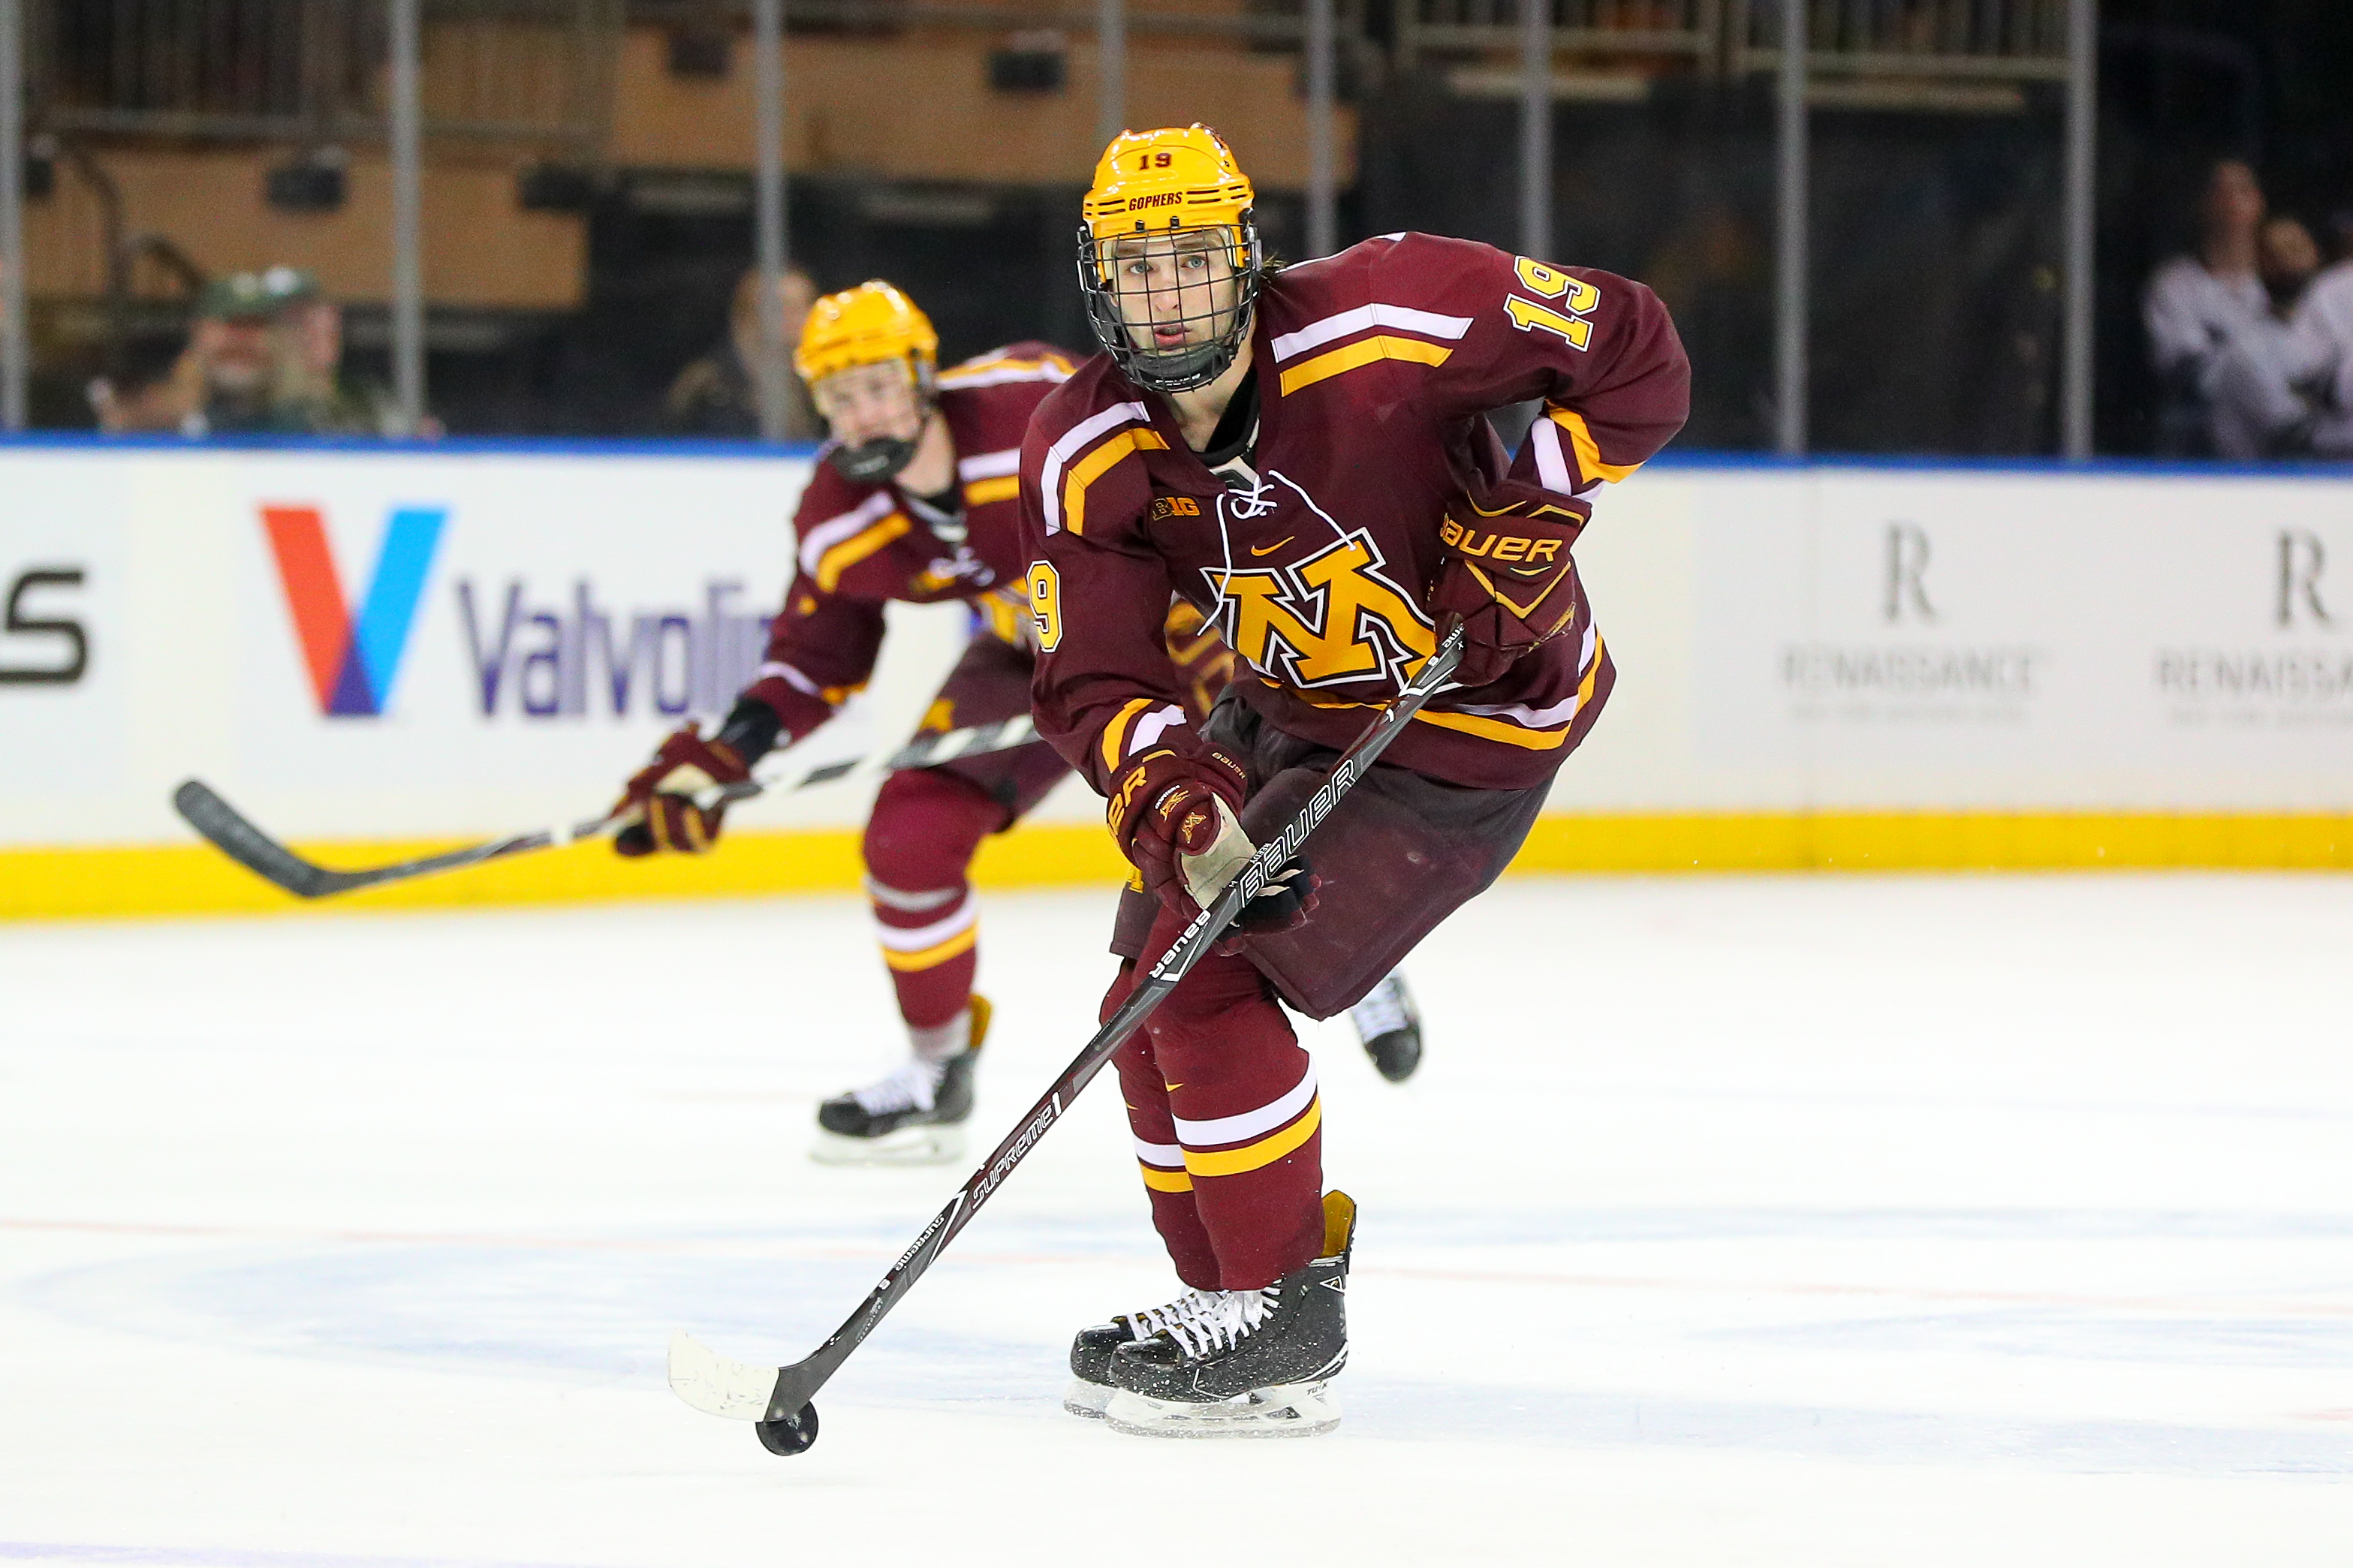 Minnesota Golden Gophers forward Scott Reedy (19) skates during the third period of the Big Ten Super Saturday College Ice Hockey Game between the Minnesota Golden Gophers and the Michigan State Spartans on January 20, 2018, at Madison Square Garden in New York City, NY.